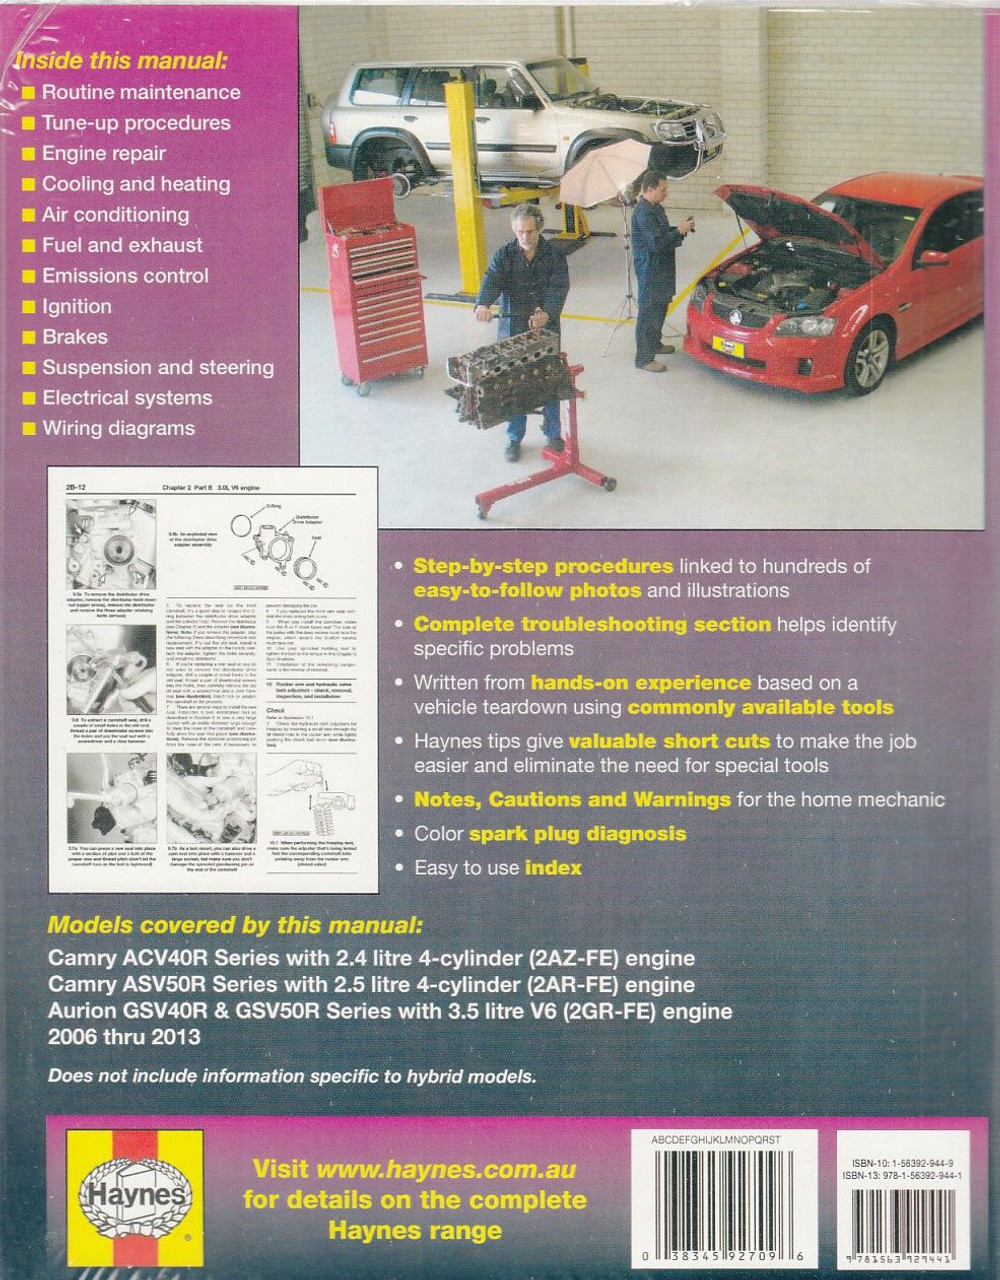 toyota camry aurion 2006 2013 workshop manual back cover [ 985 x 1261 Pixel ]